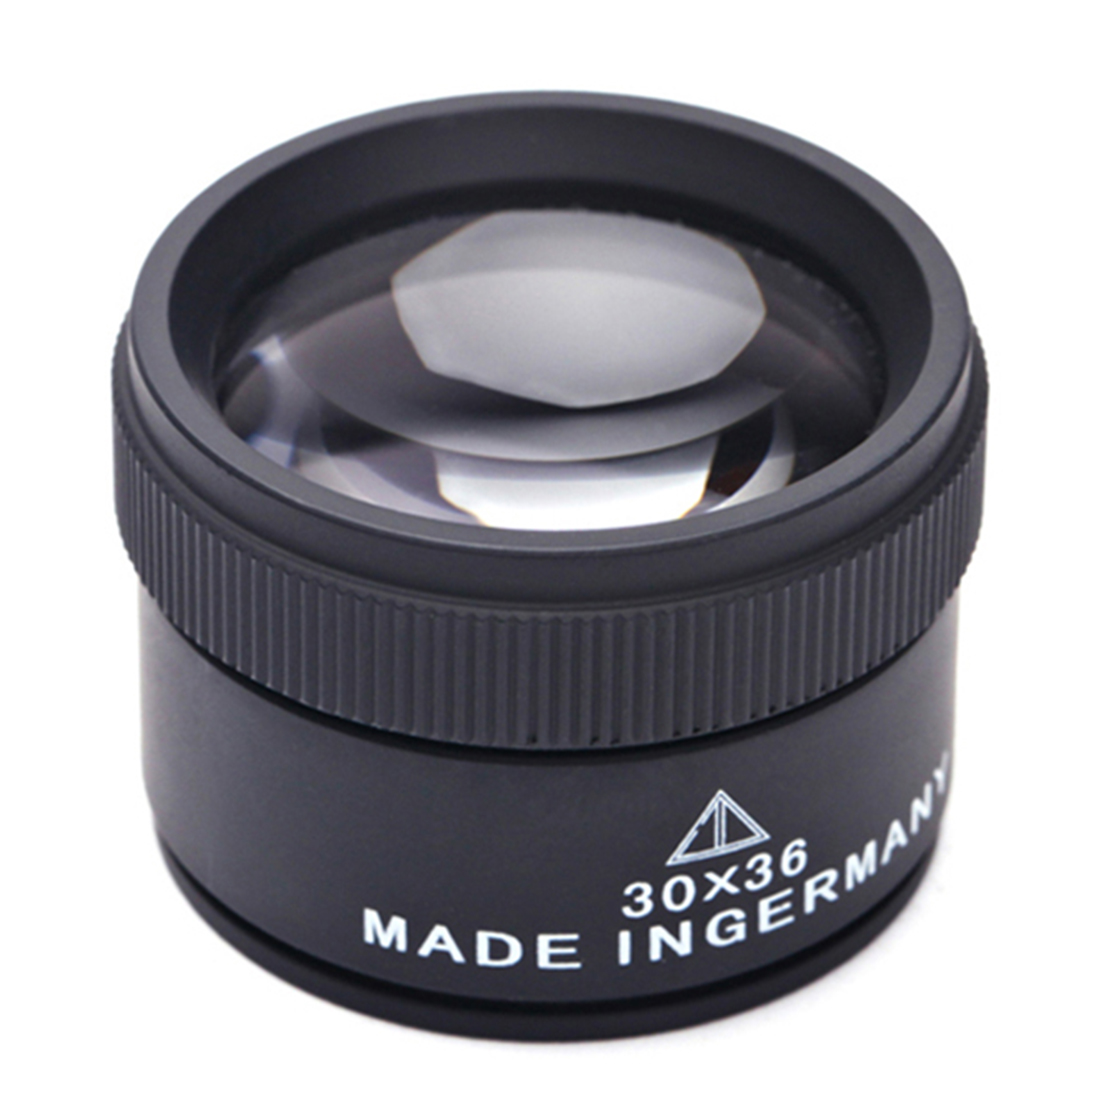 30X 36mm HD Magnifying Glass Optical Glass Lens Loupe Magnifier Mini Pocket Magnifier Handheld Coin Stamps Jewelry Loupe